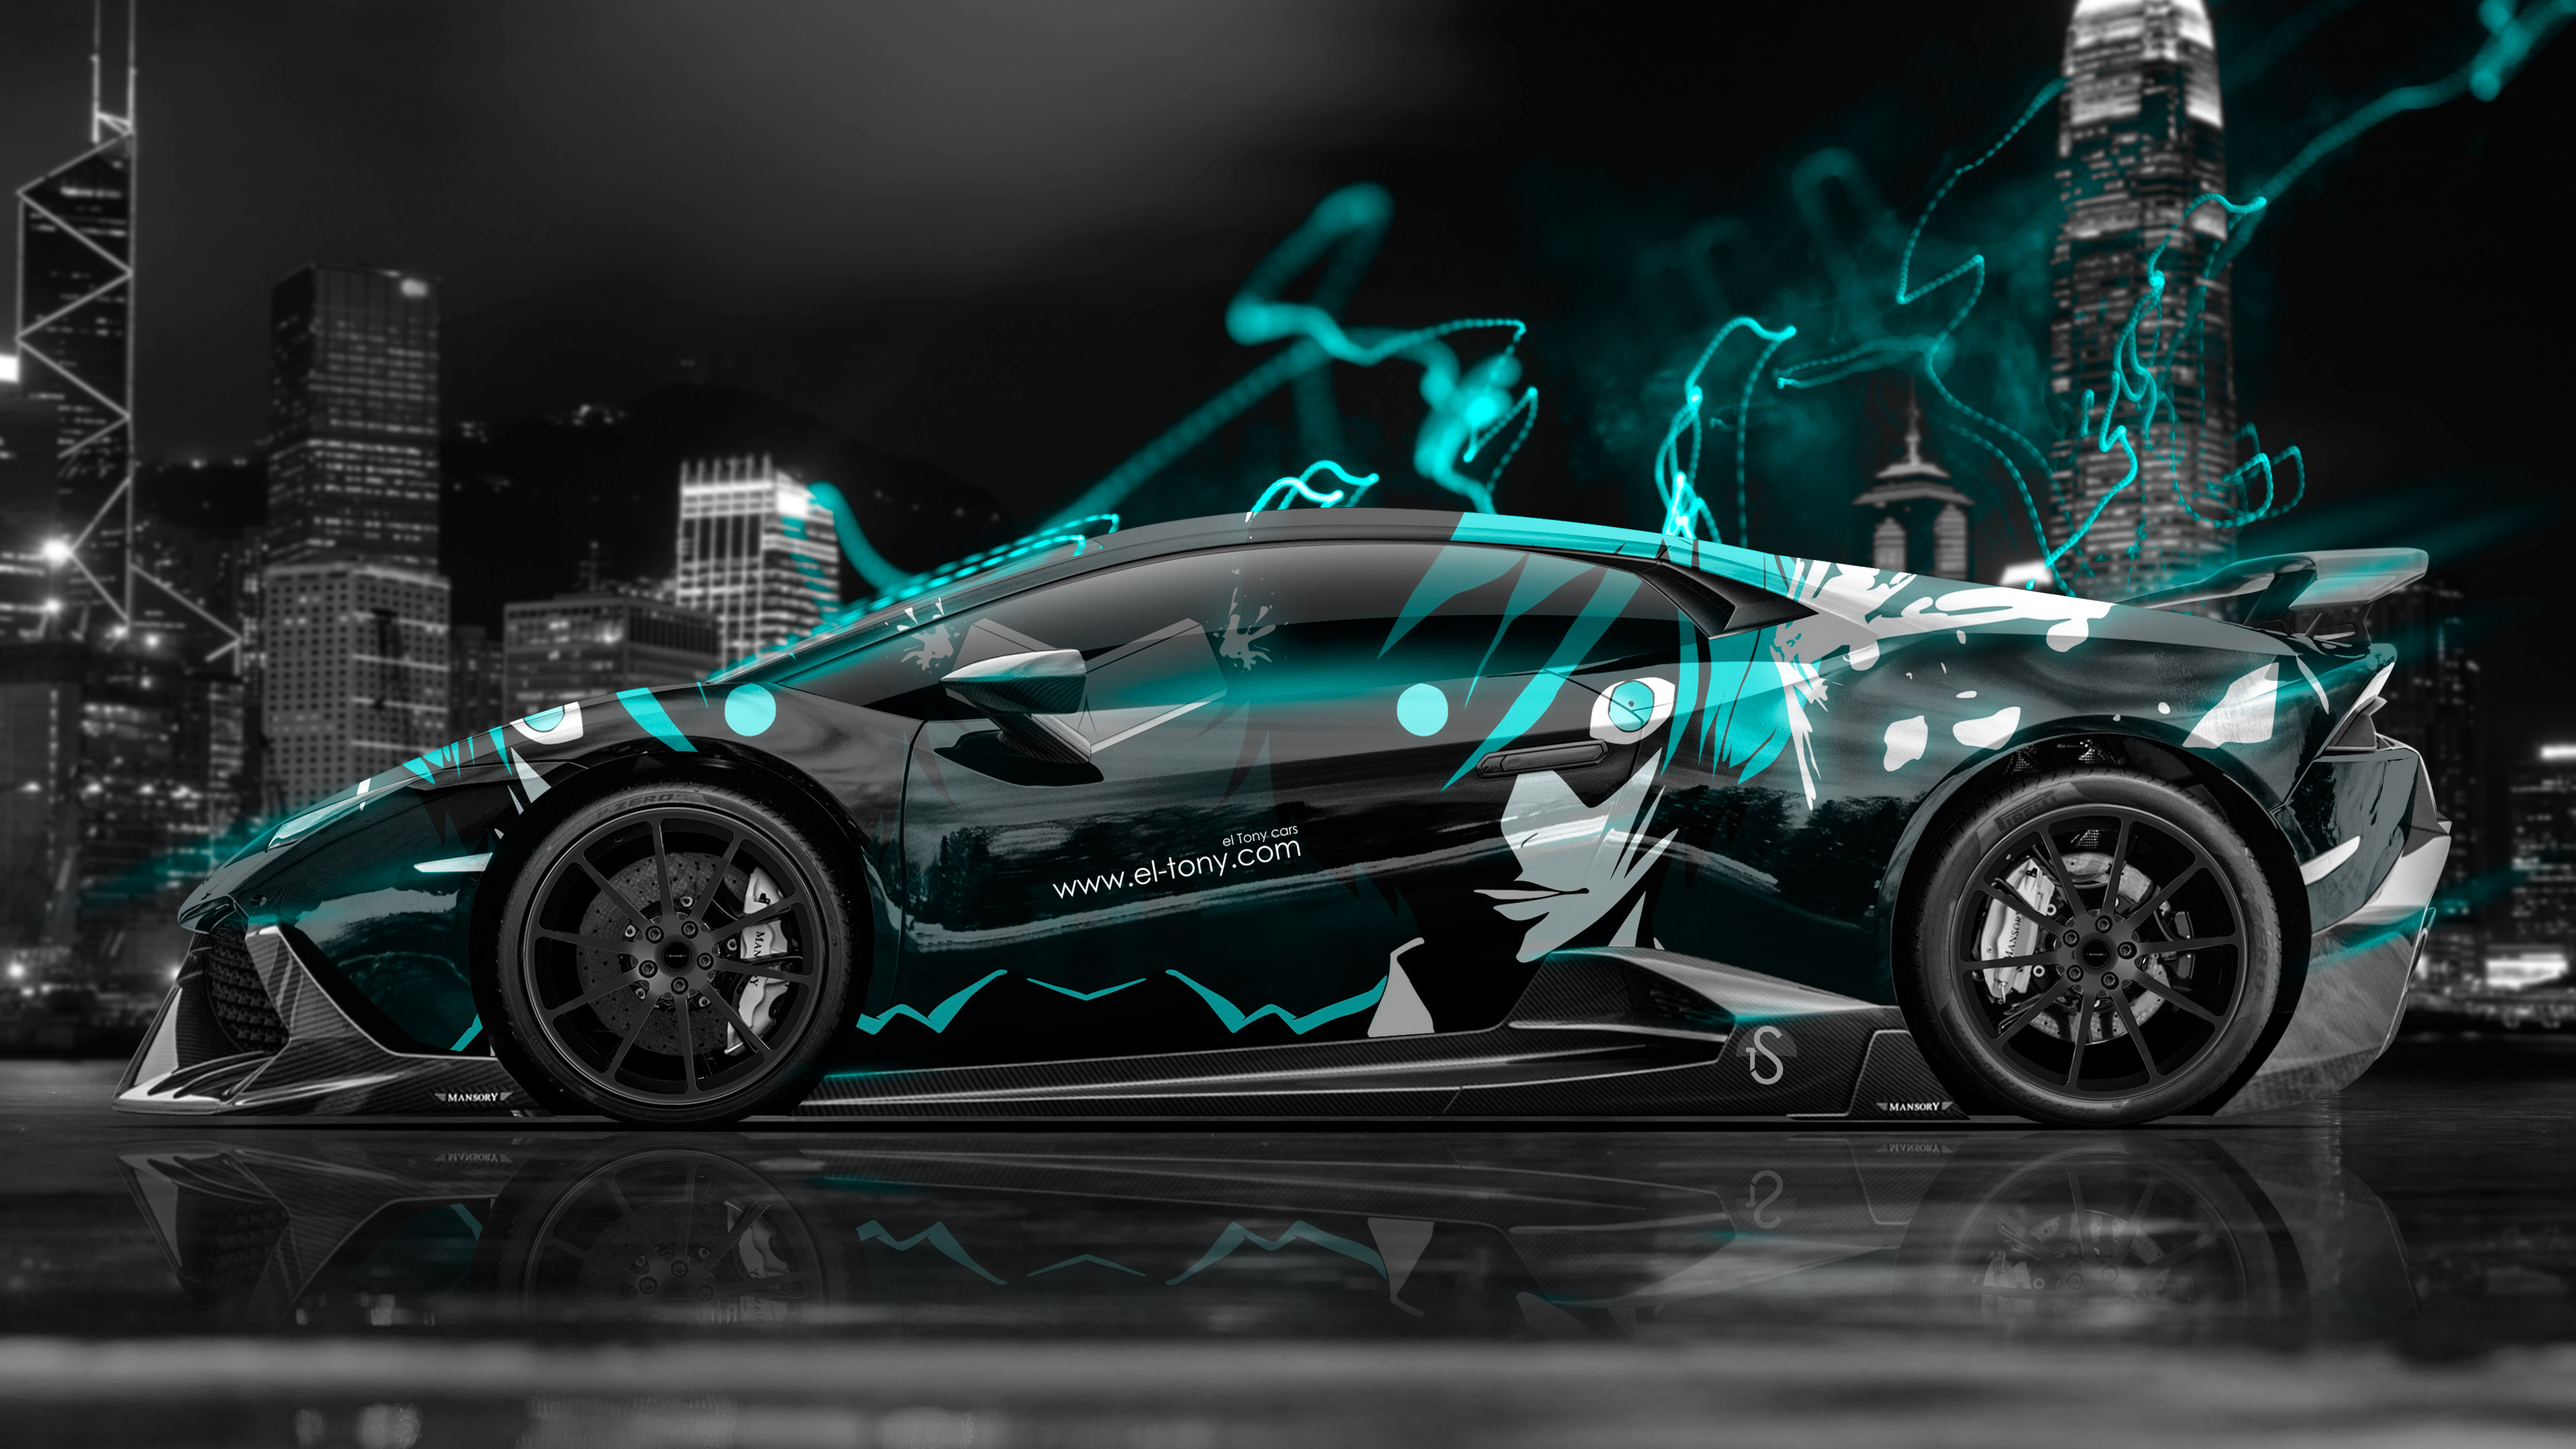 Superbe 4K Lamborghini Huracan Mansory Tuning Anime Aerography City Car 2015